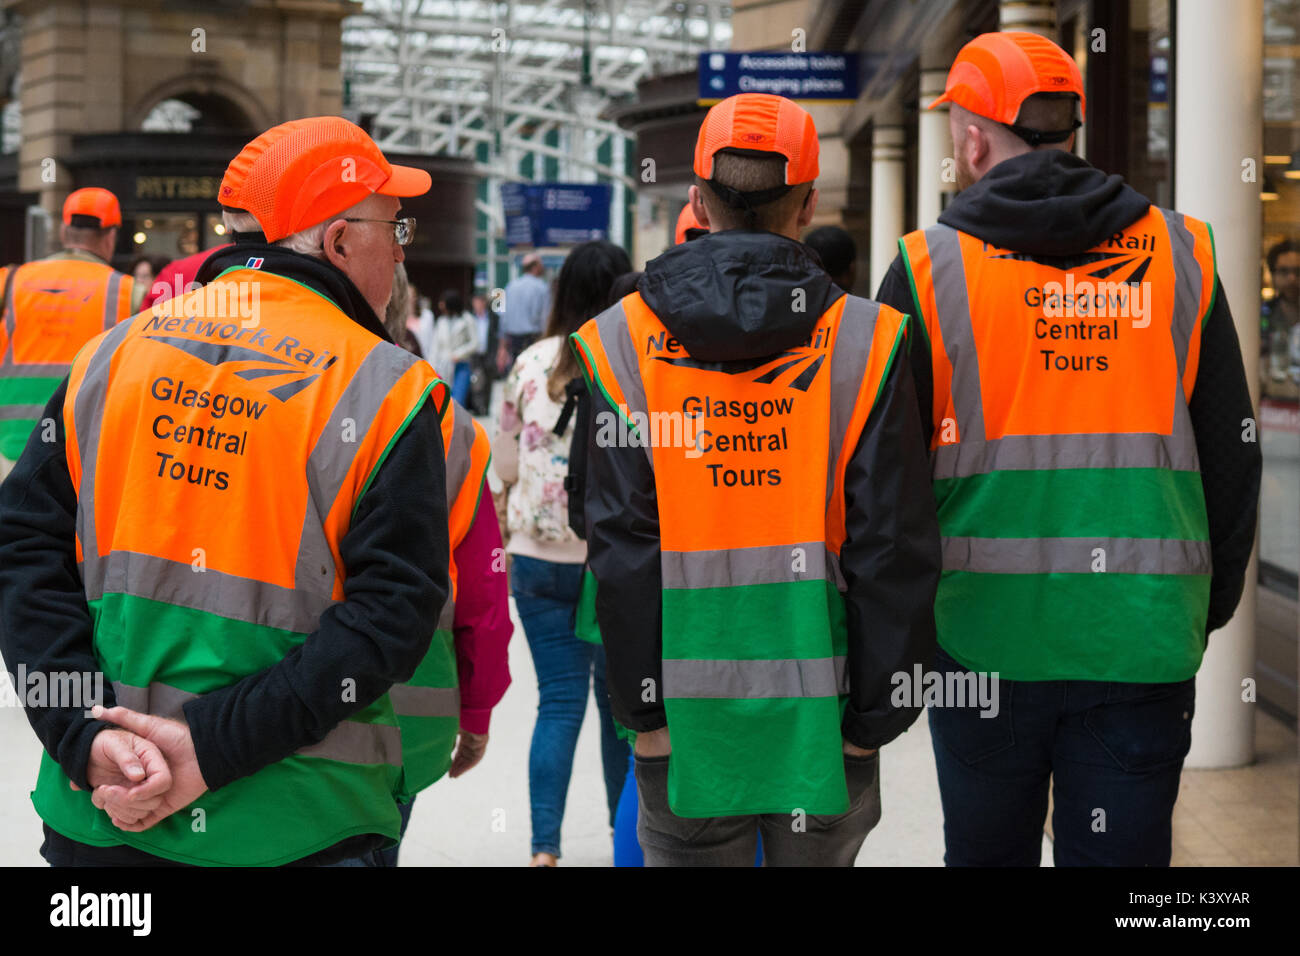 Glasgow Central Station tour - people at the beginning of the tour - Stock Image